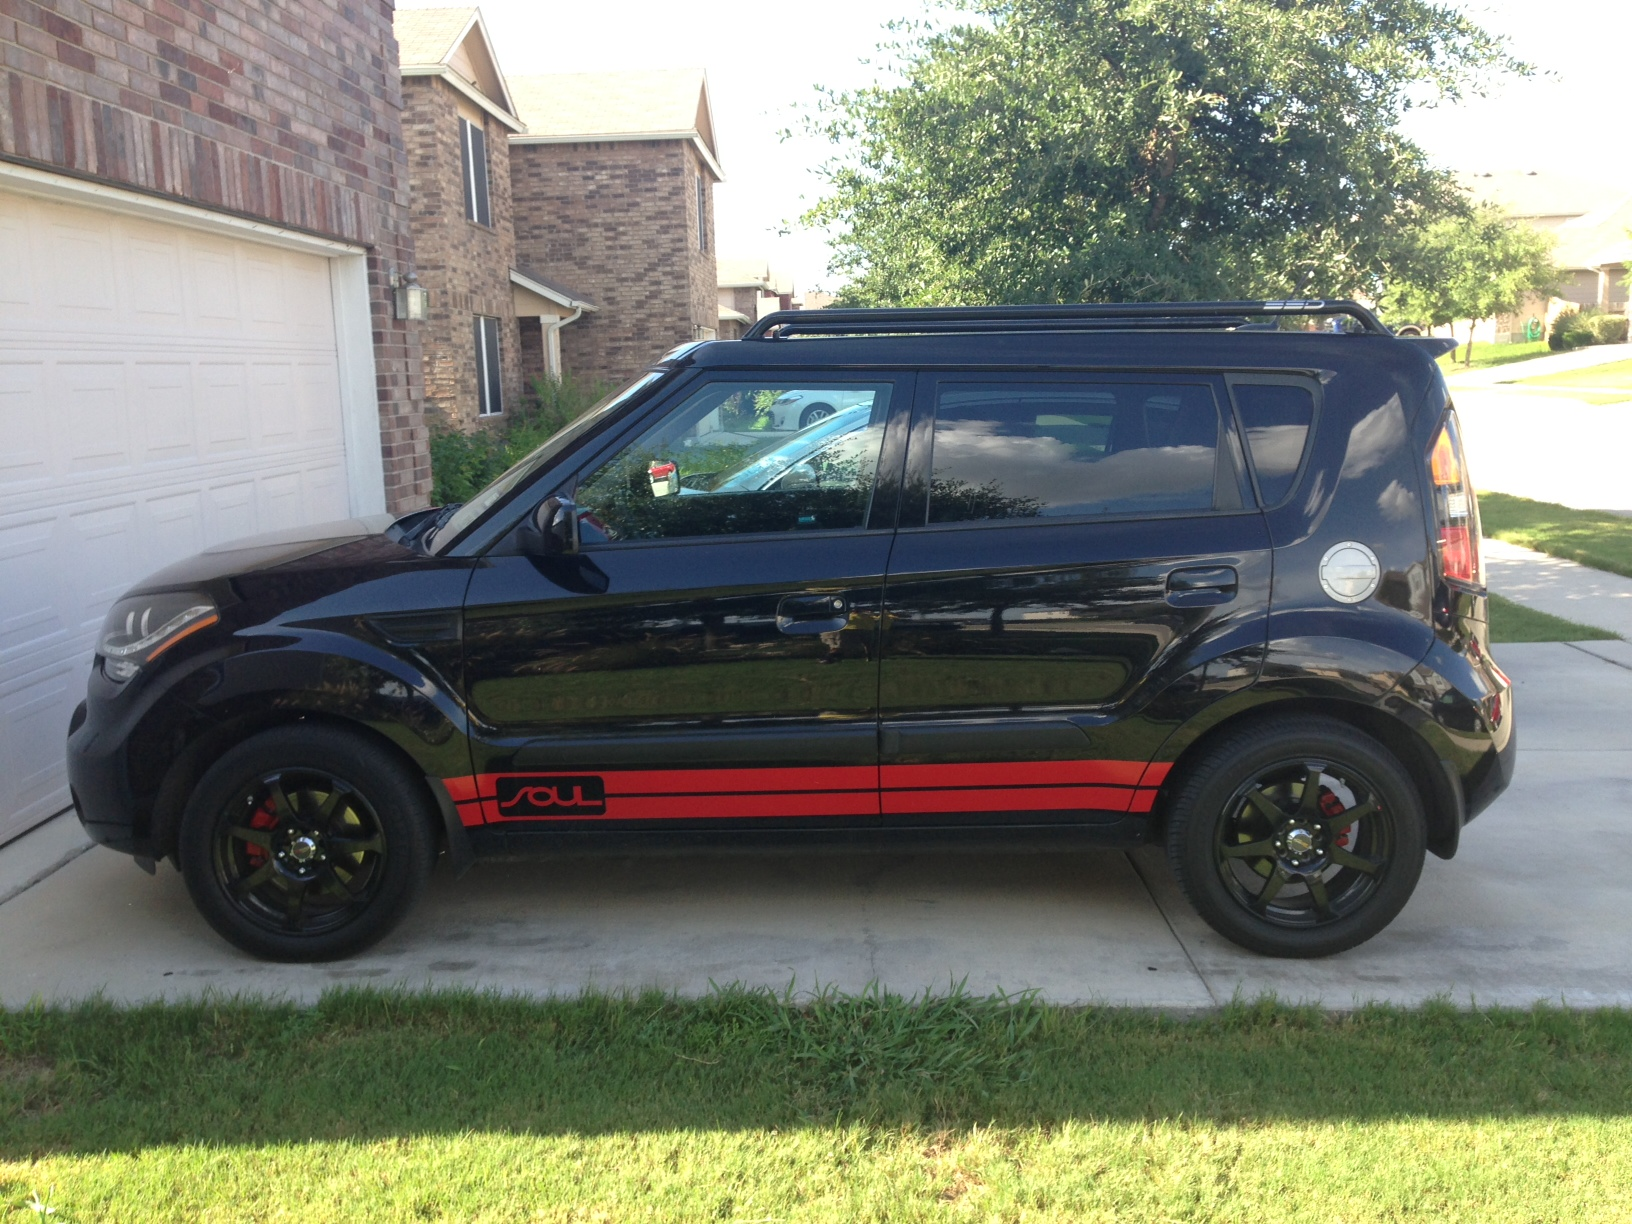 Black Soul With Red Burner Grille, Rally Stripe [Photos ...